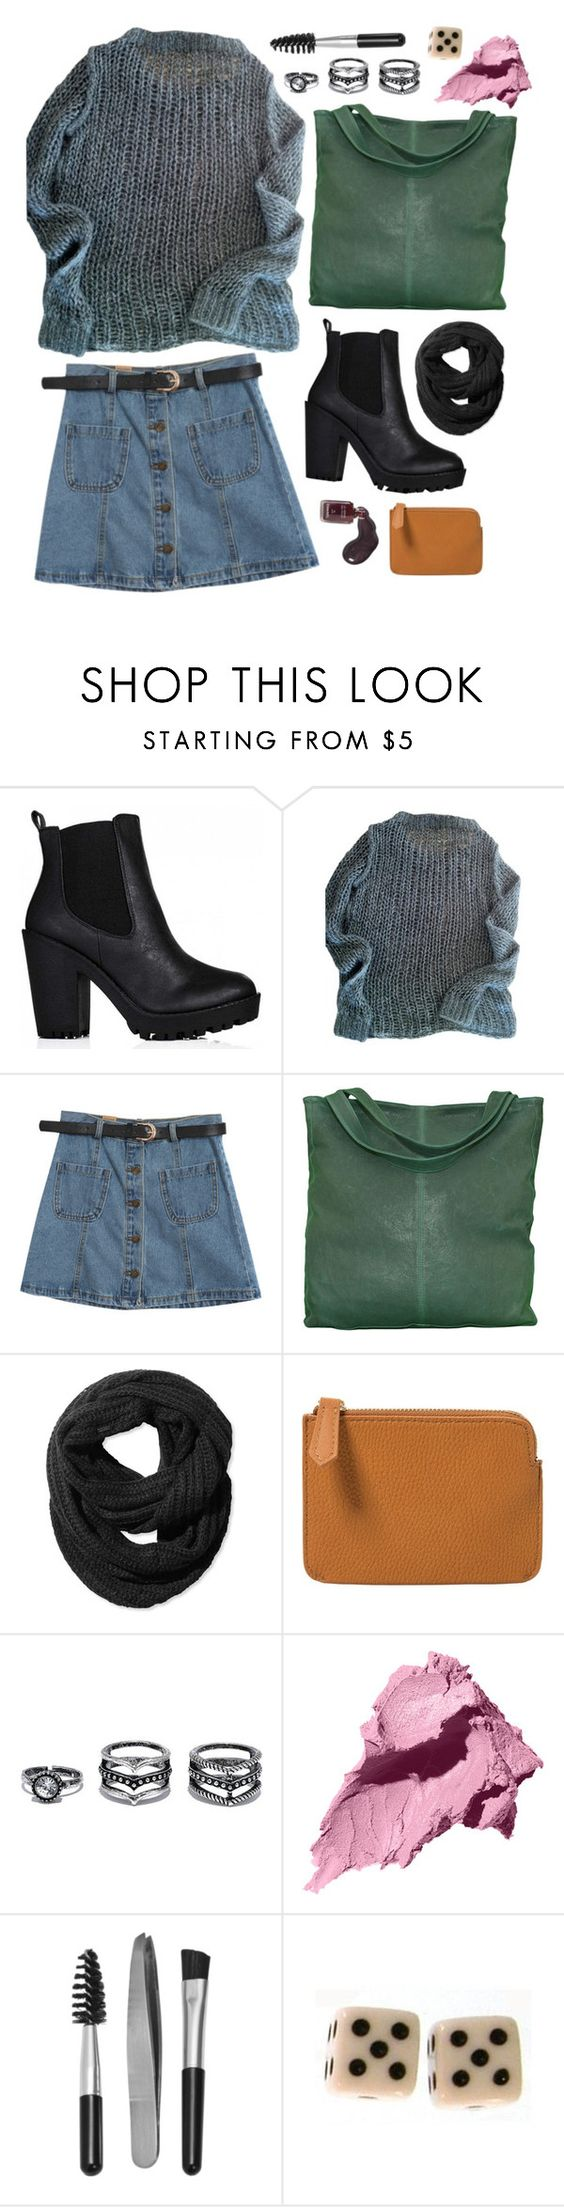 """together"" by thefloweringstars ❤ liked on Polyvore featuring AllSaints, Chanel, Chicnova Fashion, chissene, Pistil, MANGO, LULUS, Bobbi Brown Cosmetics and Sephora Collection"